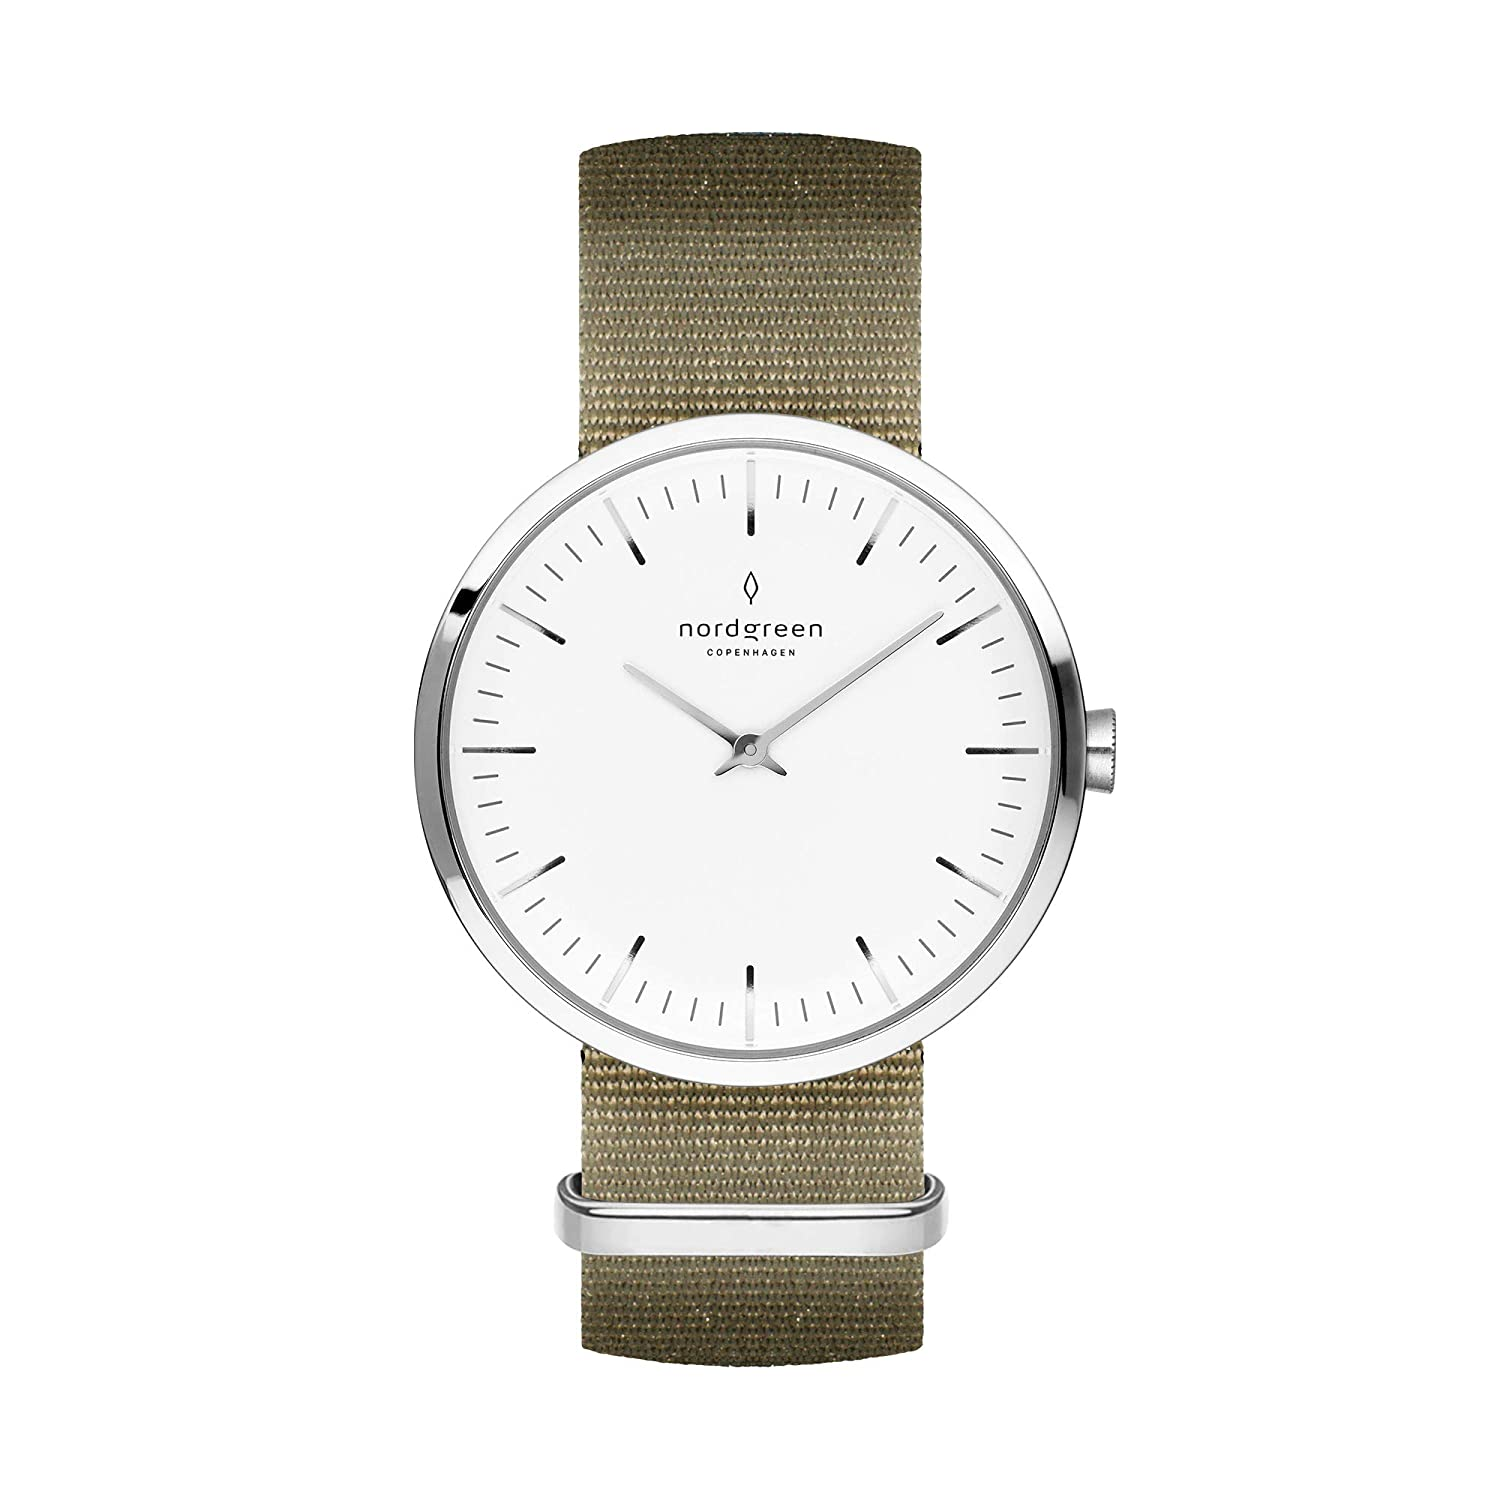 Nordgreen Unisex Infinity Scandinavian Silver Analog Watch with Mesh Or Leather Strap 10042